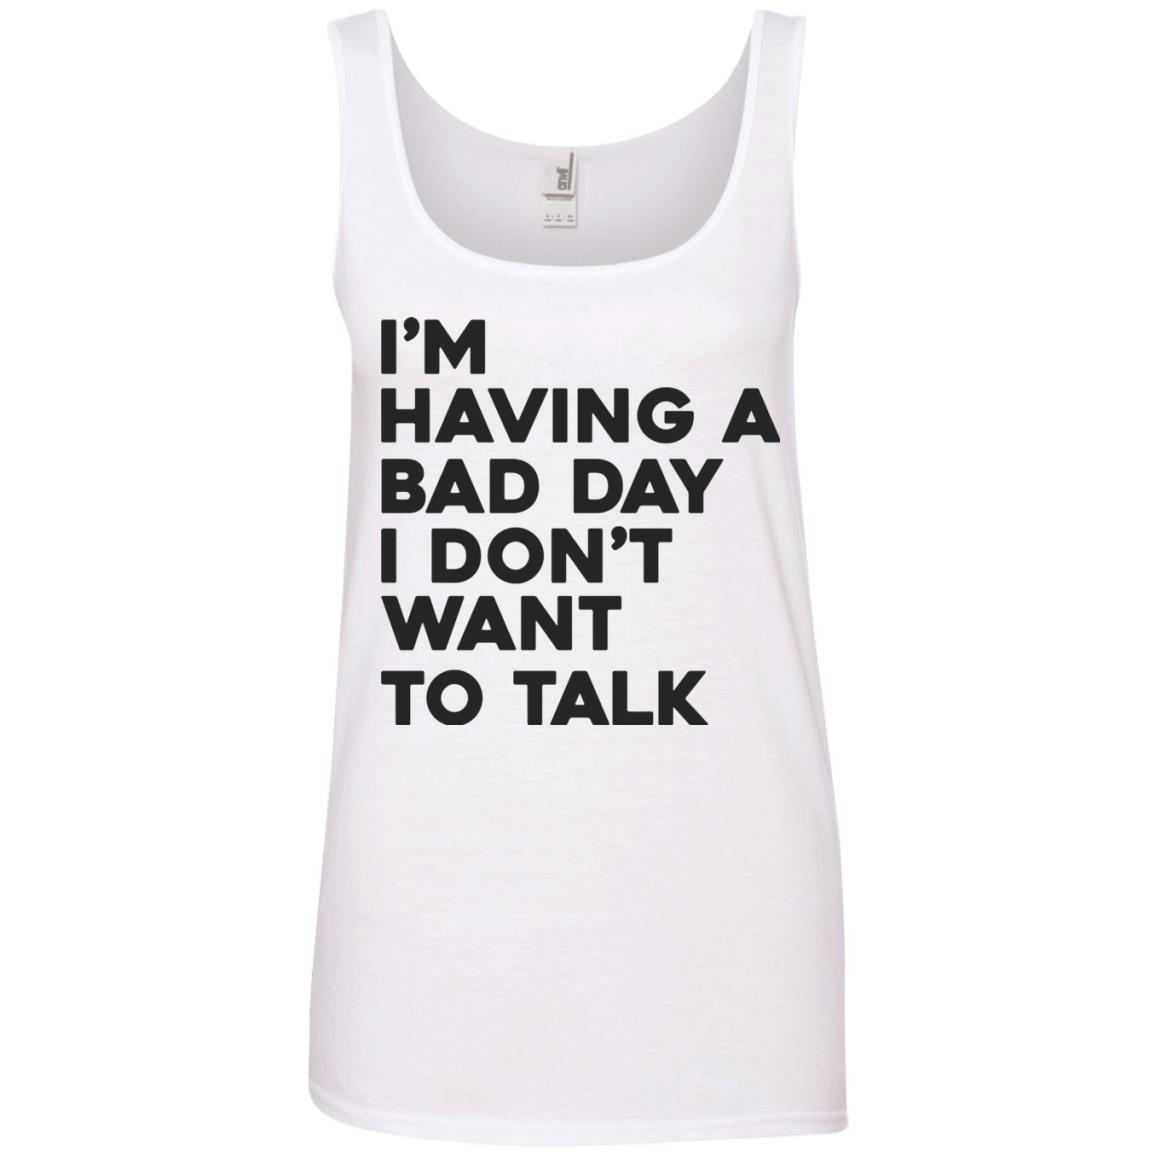 image 242px I'm having a bad day I don't want to talk t shirt, hoodies, tank